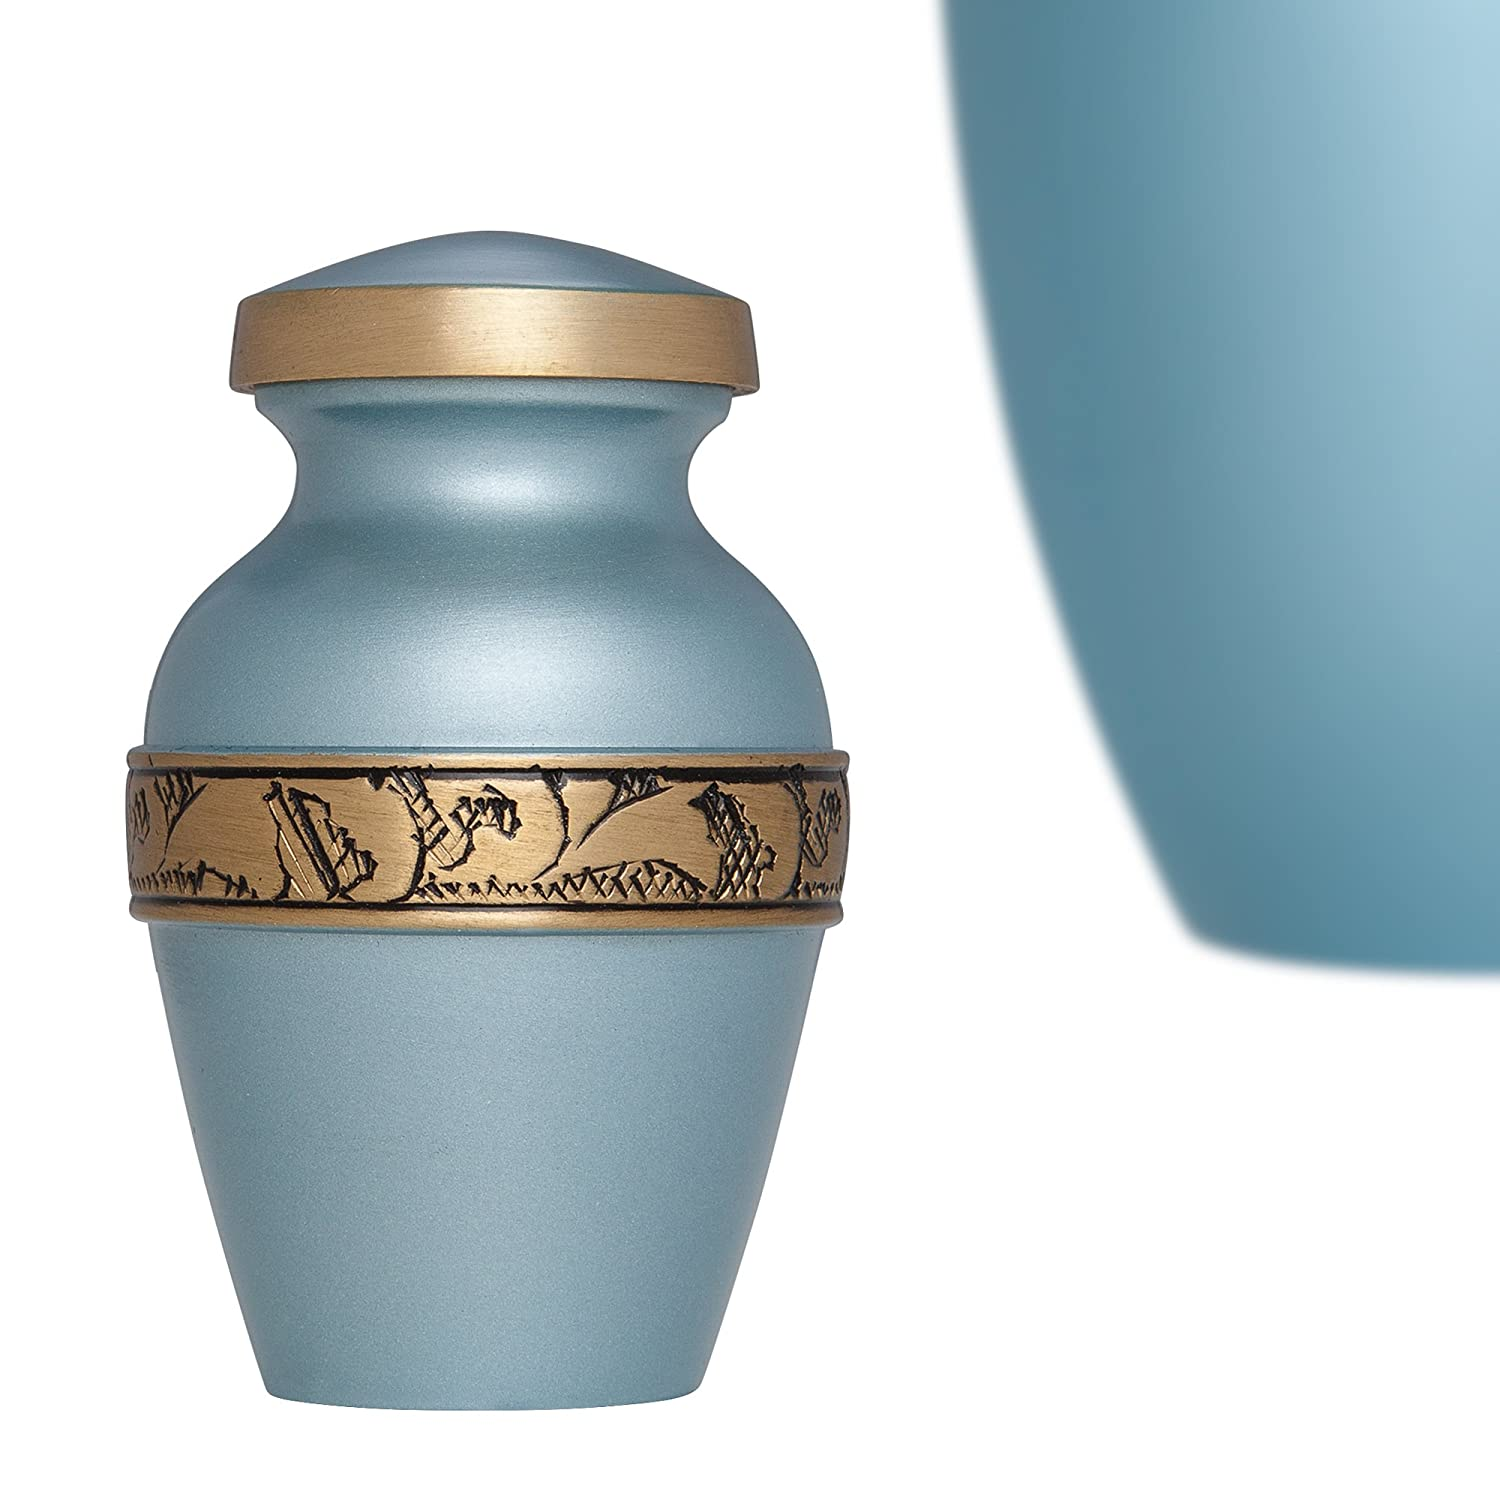 Blue Mini Keepsake Urn with engraved gold band • Miniature Funeral Cremation Urn fits Small Amount of Ashes • Vignoble Model • 3 inches Tall Liliane Memorials